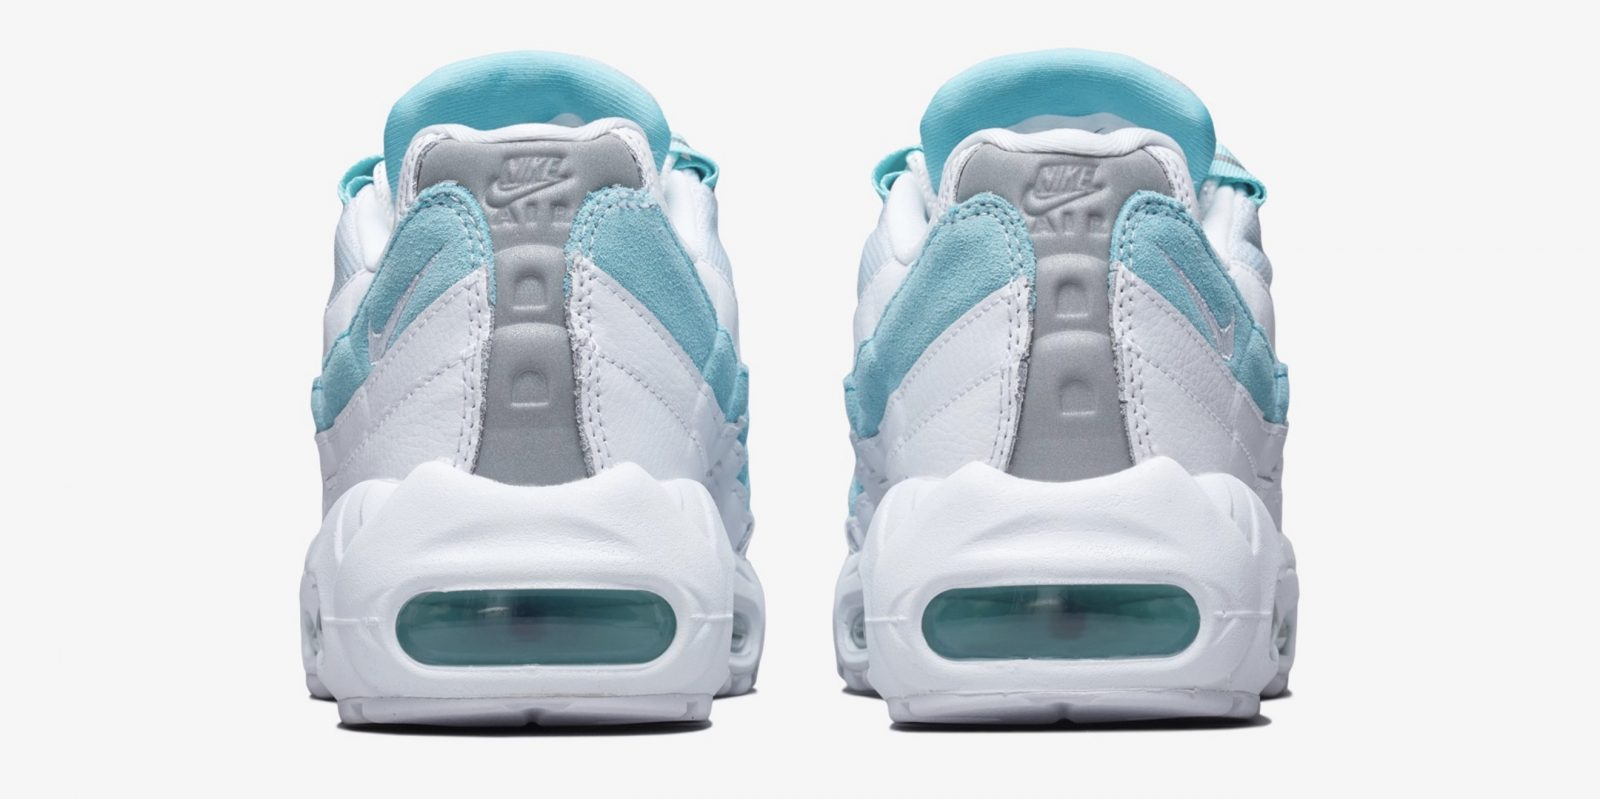 The Waves On This Nike Air Max 95 Look Like Actual Waves In 'Light Aqua'